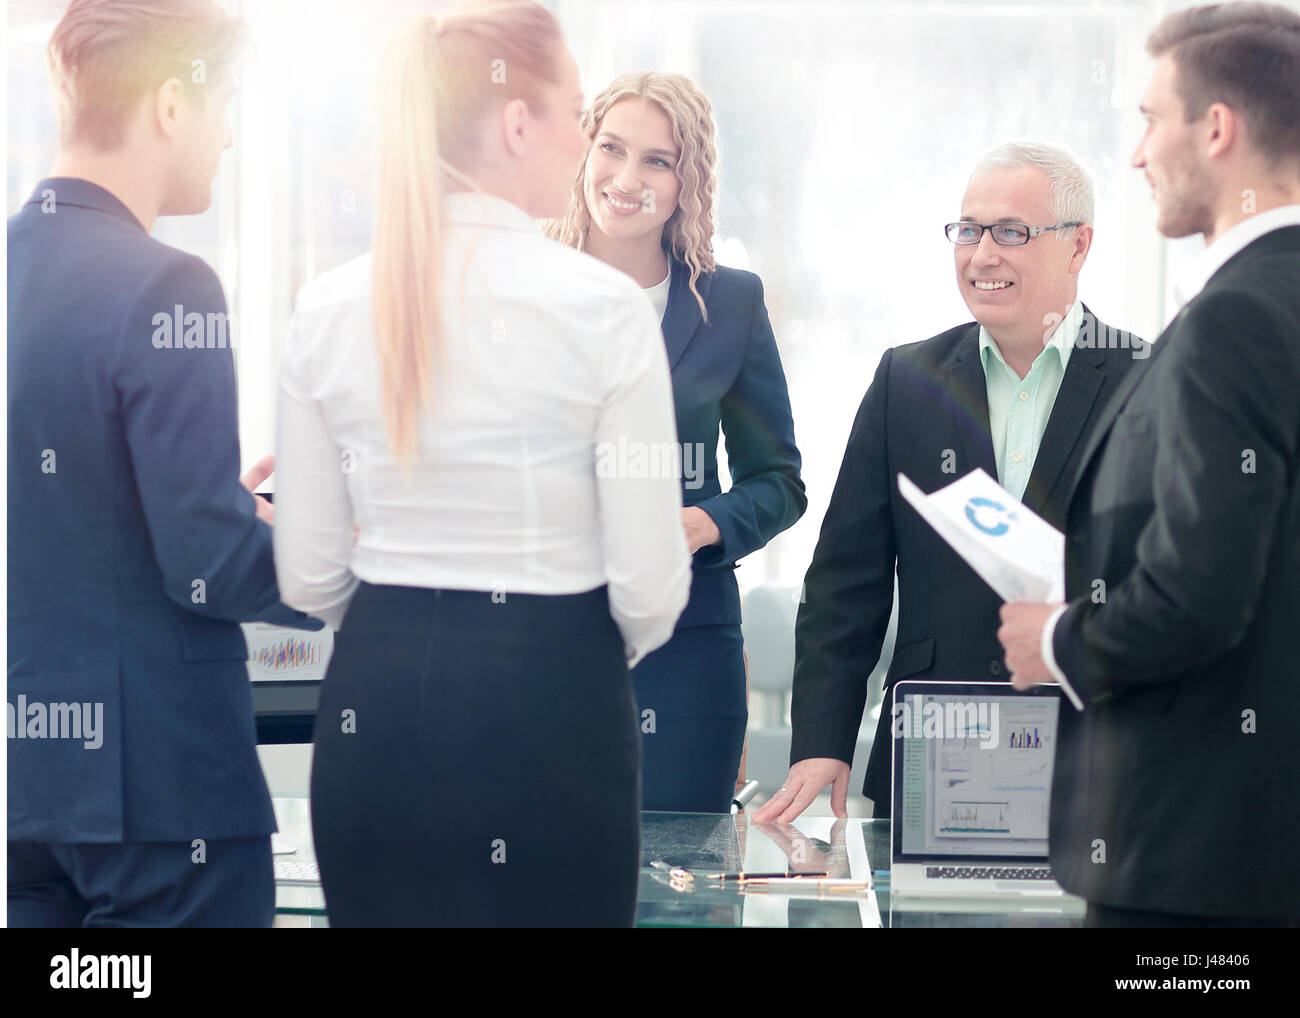 Image of business partners discussing documents and ideas at mee - Stock Image